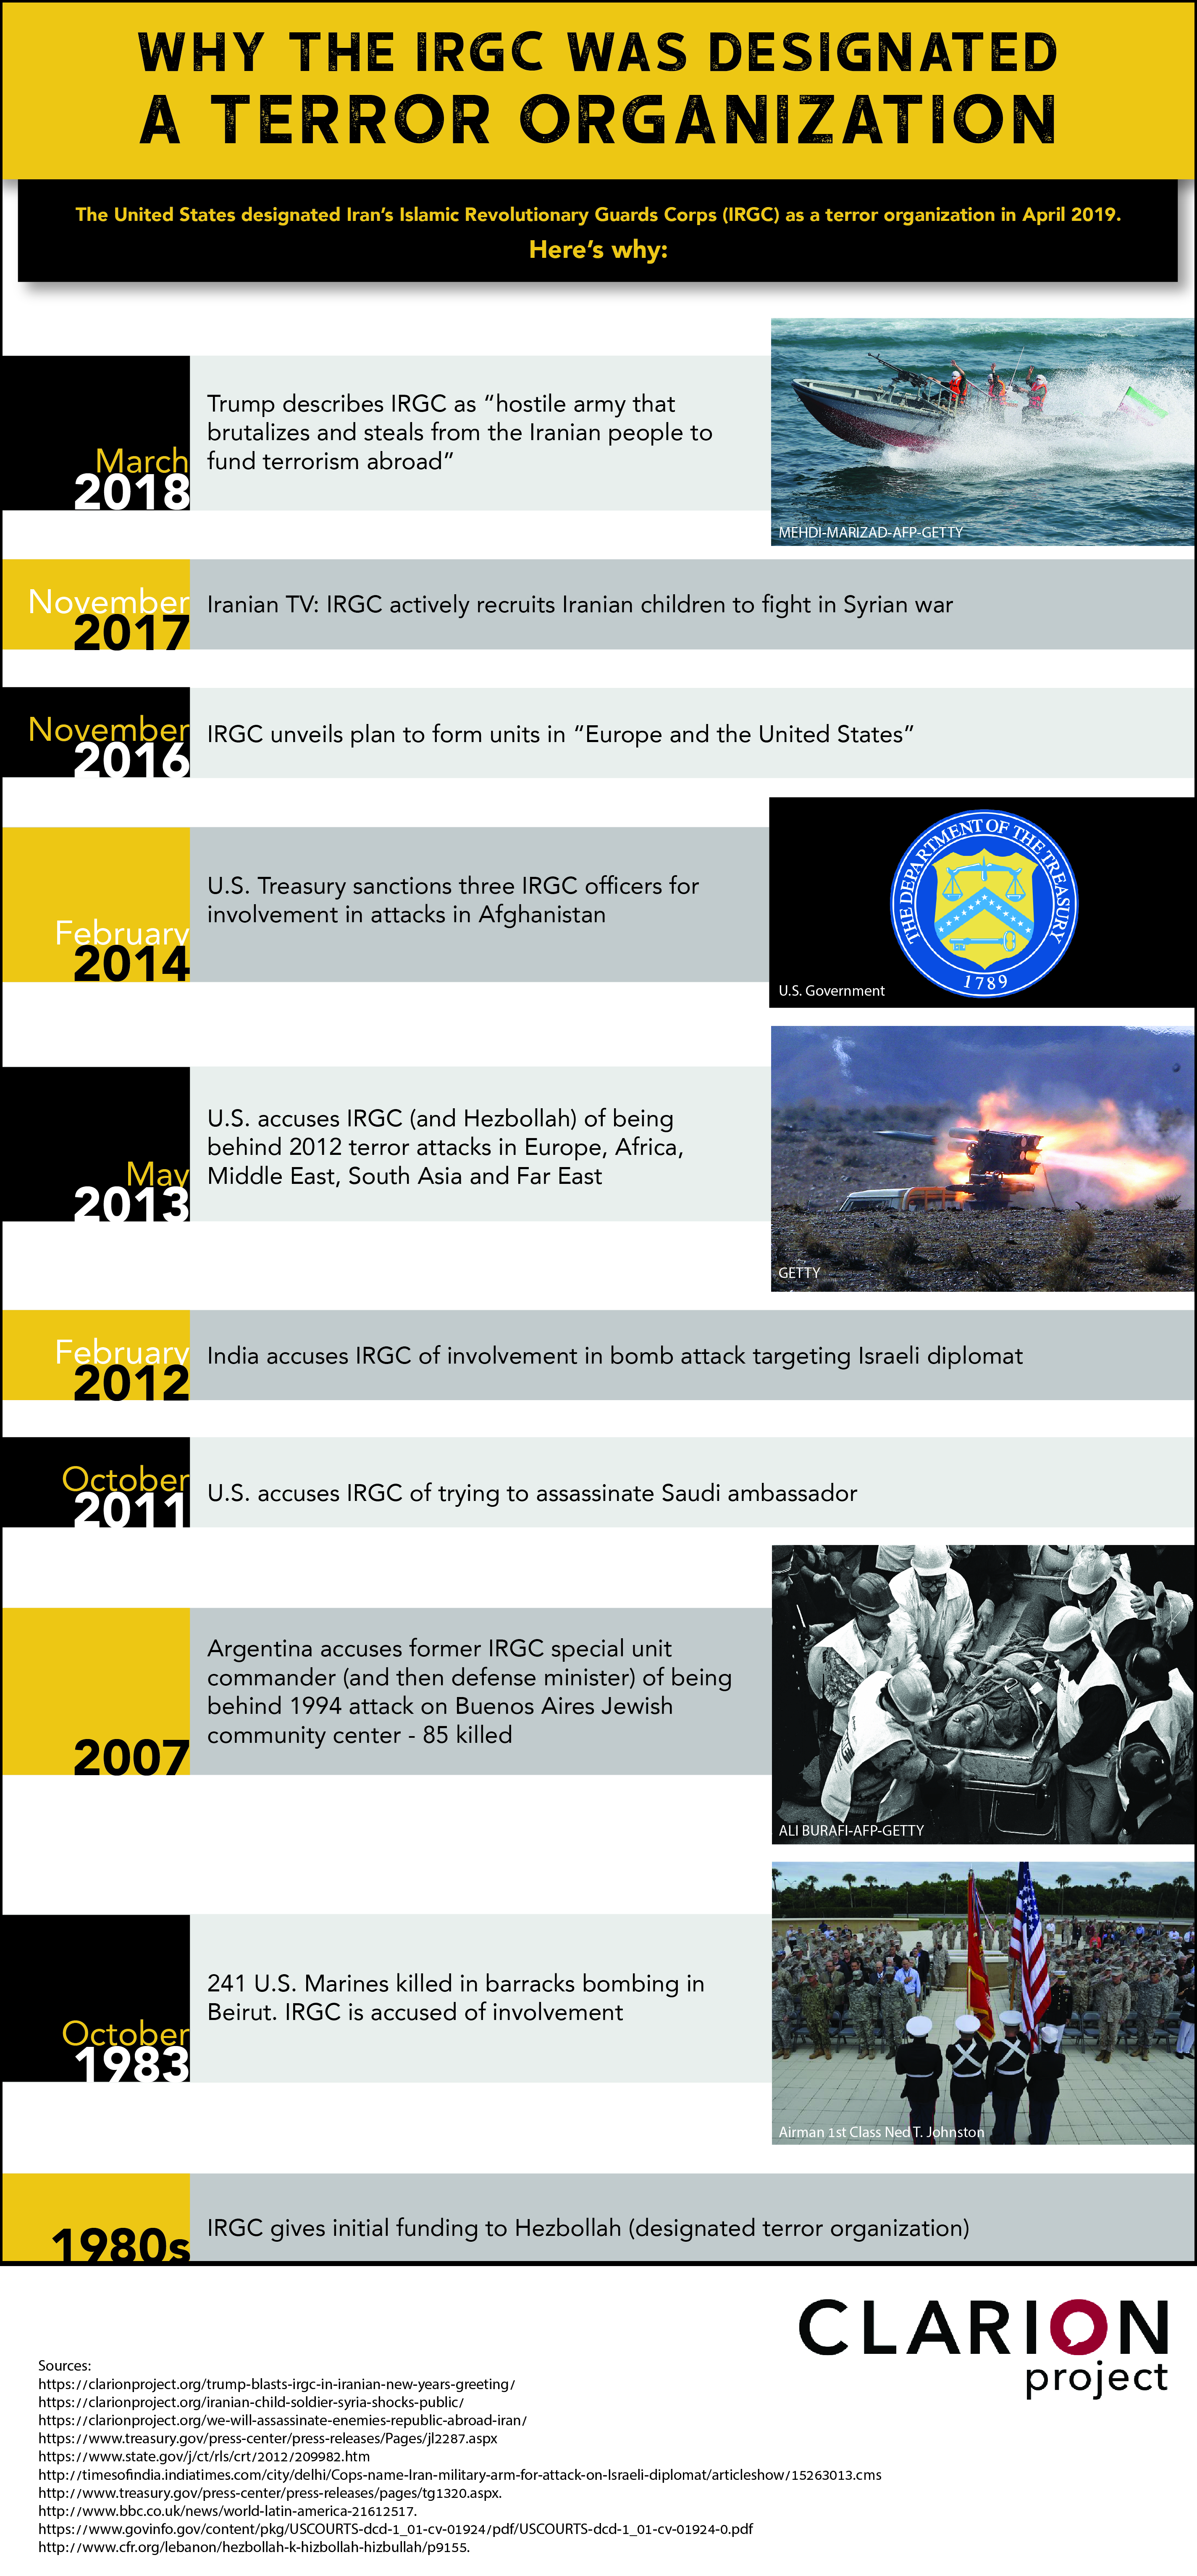 An infographic showing a timeline of the IRGC's terror-related activities.